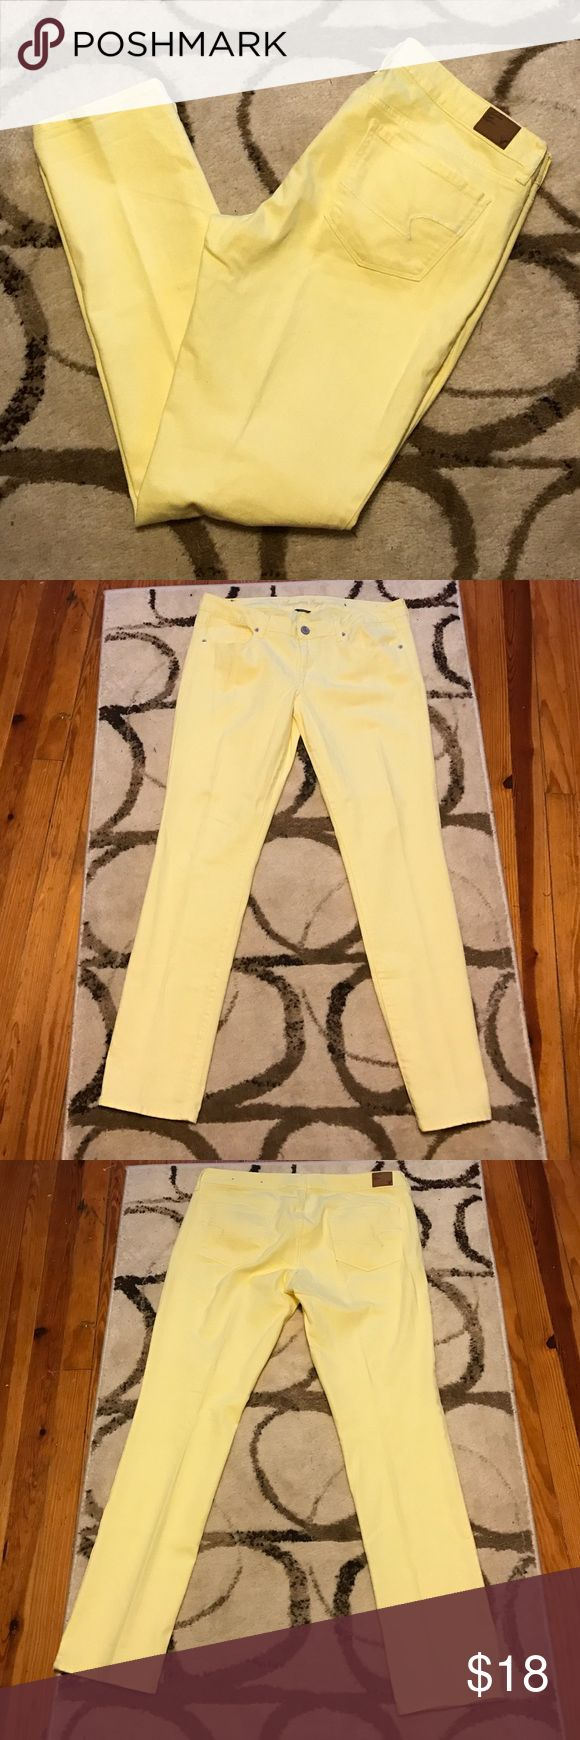 American Eagle Yellow Skinny Jeans AEO yellow skinny jeans. Size 14--REG. In excellent gently used condition. Worn only a few times. No stains no signs of wear. Perfect for spring! They are stretch. American Eagle Outfitters Jeans Skinny